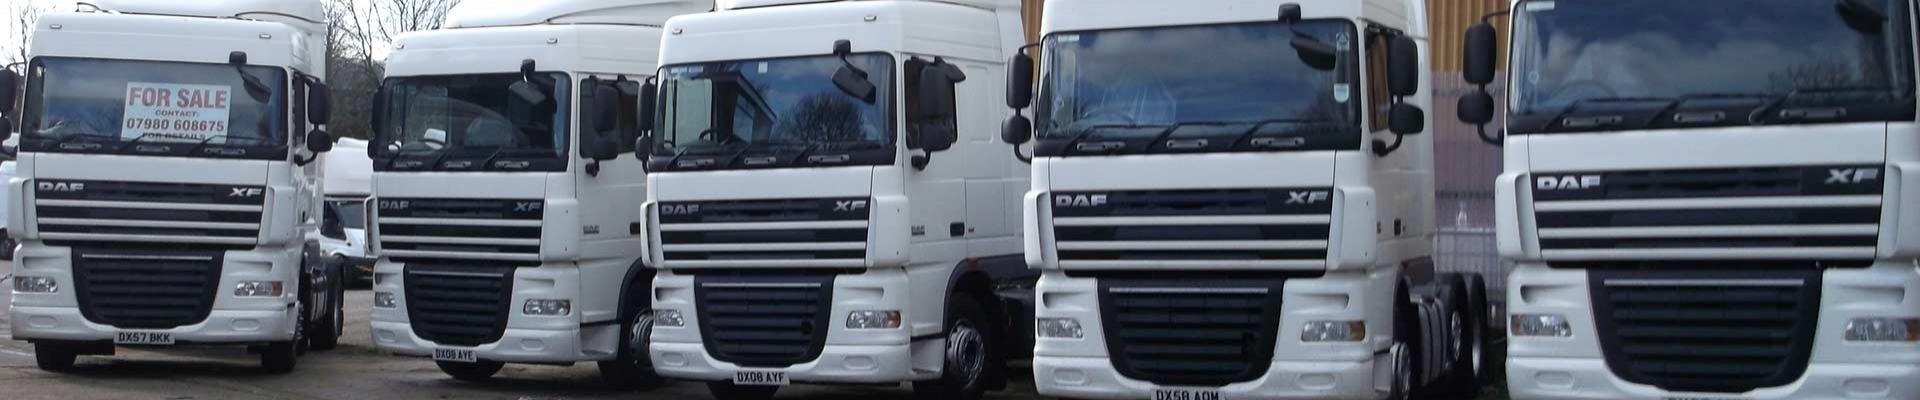 Light Commercial Vehicles and DAF Trucks For Sale